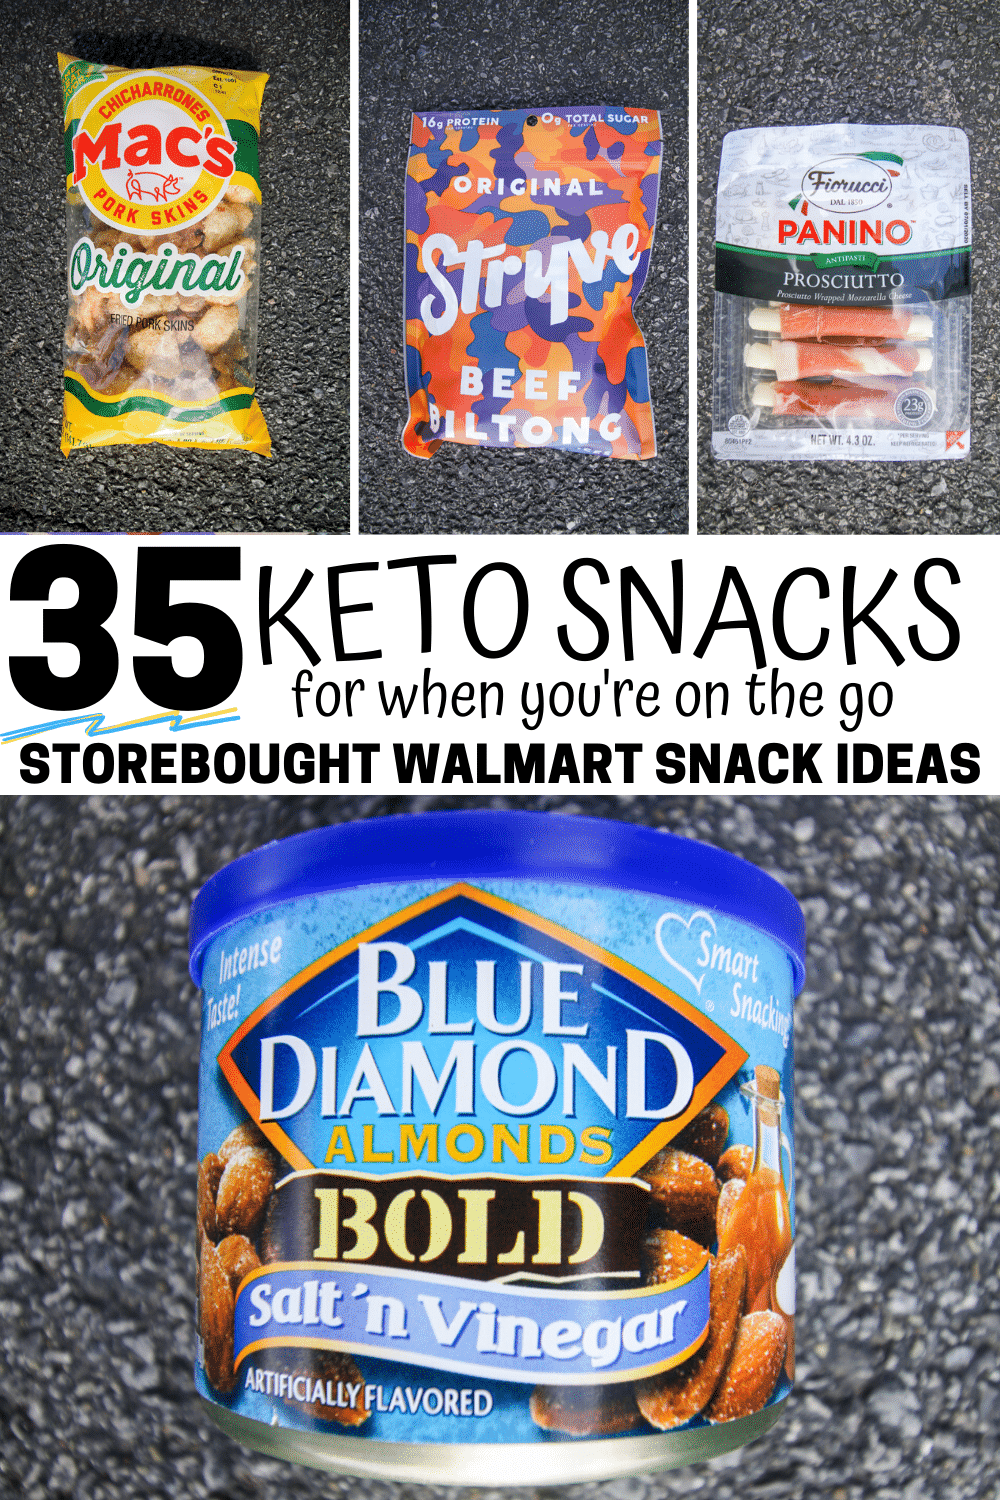 A collage of 4 keto snacks that you can find at walmart.